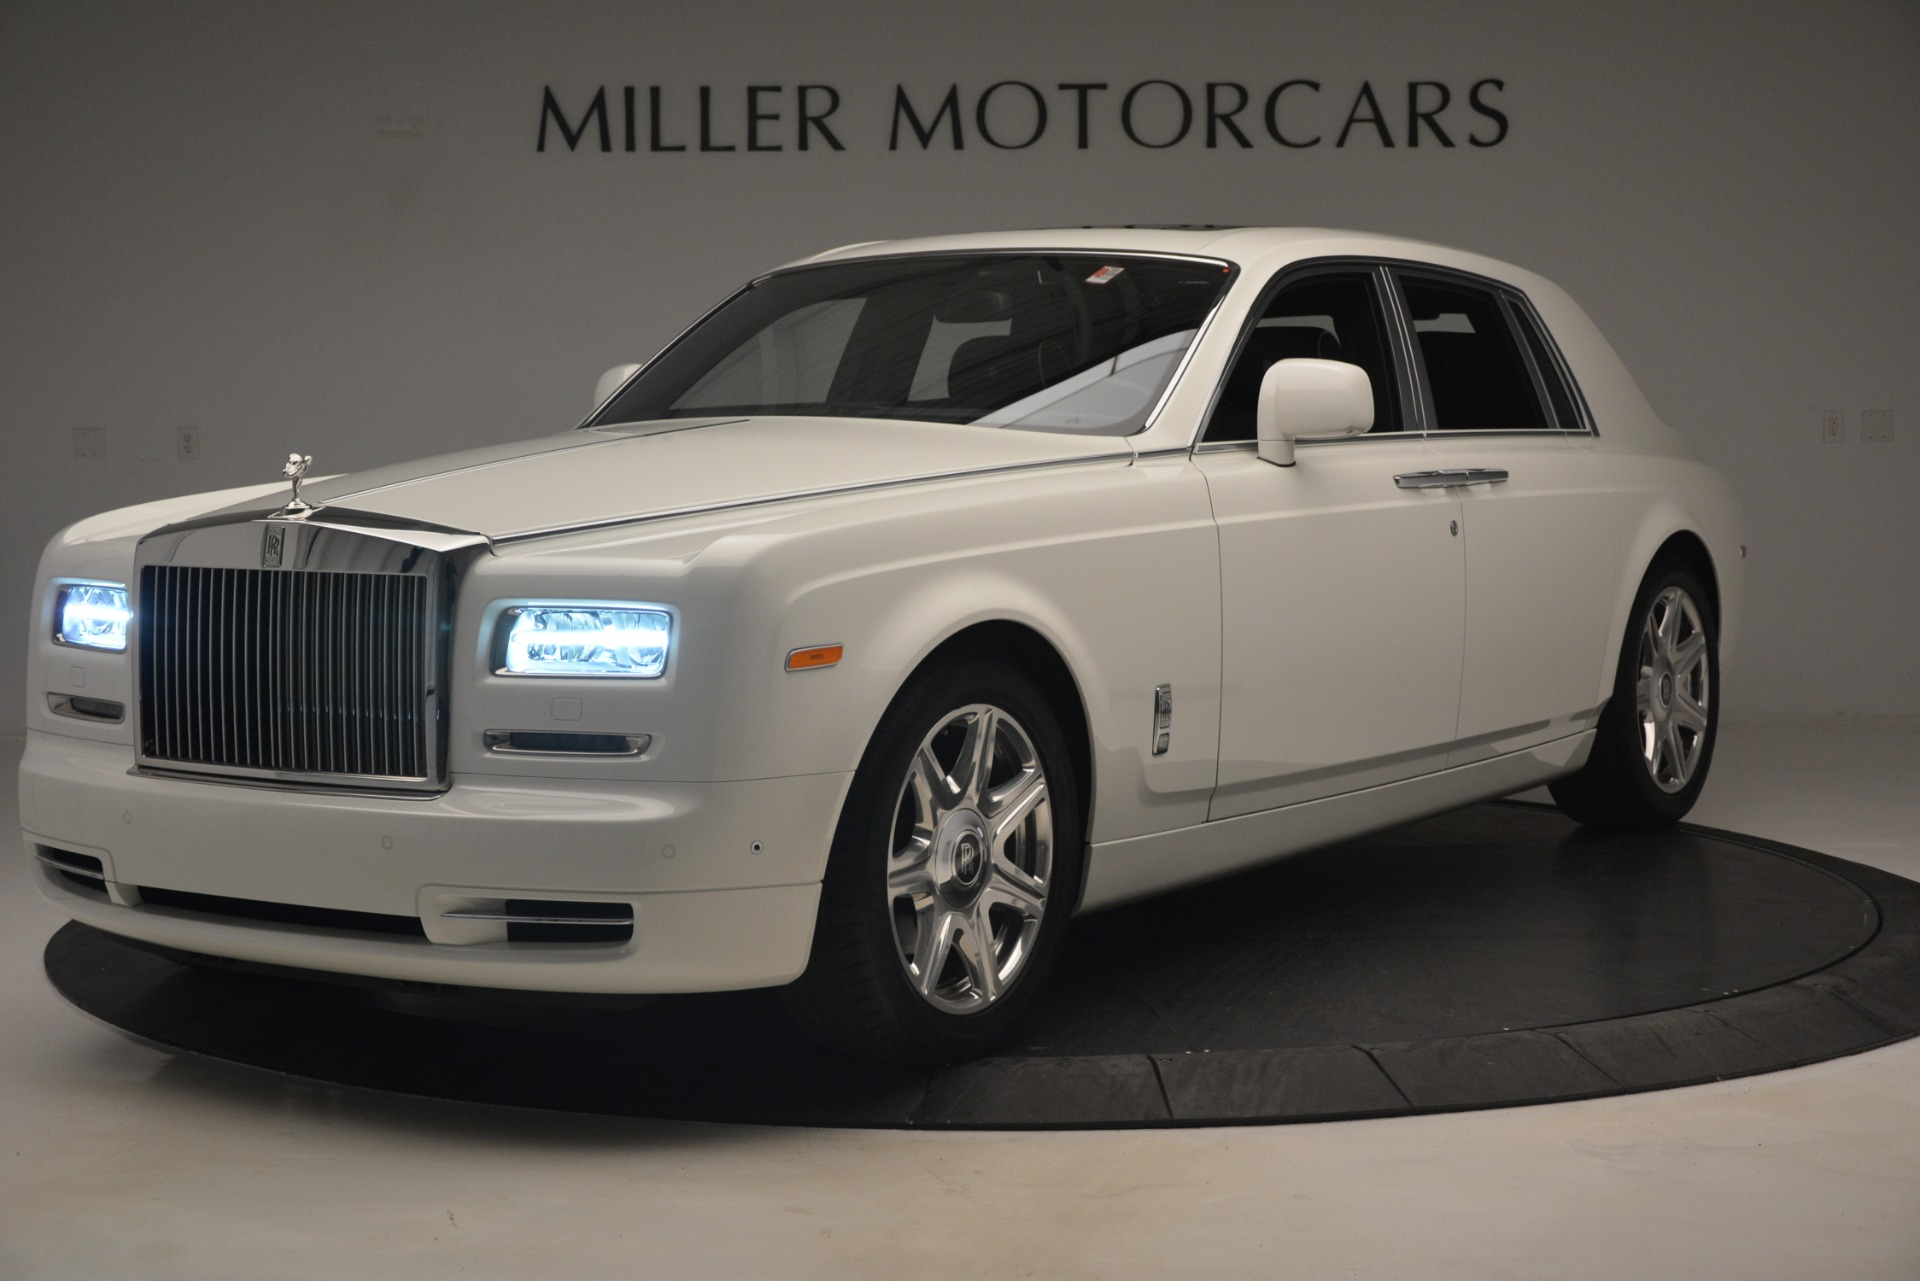 Used 2014 Rolls-Royce Phantom for sale Sold at Aston Martin of Greenwich in Greenwich CT 06830 1